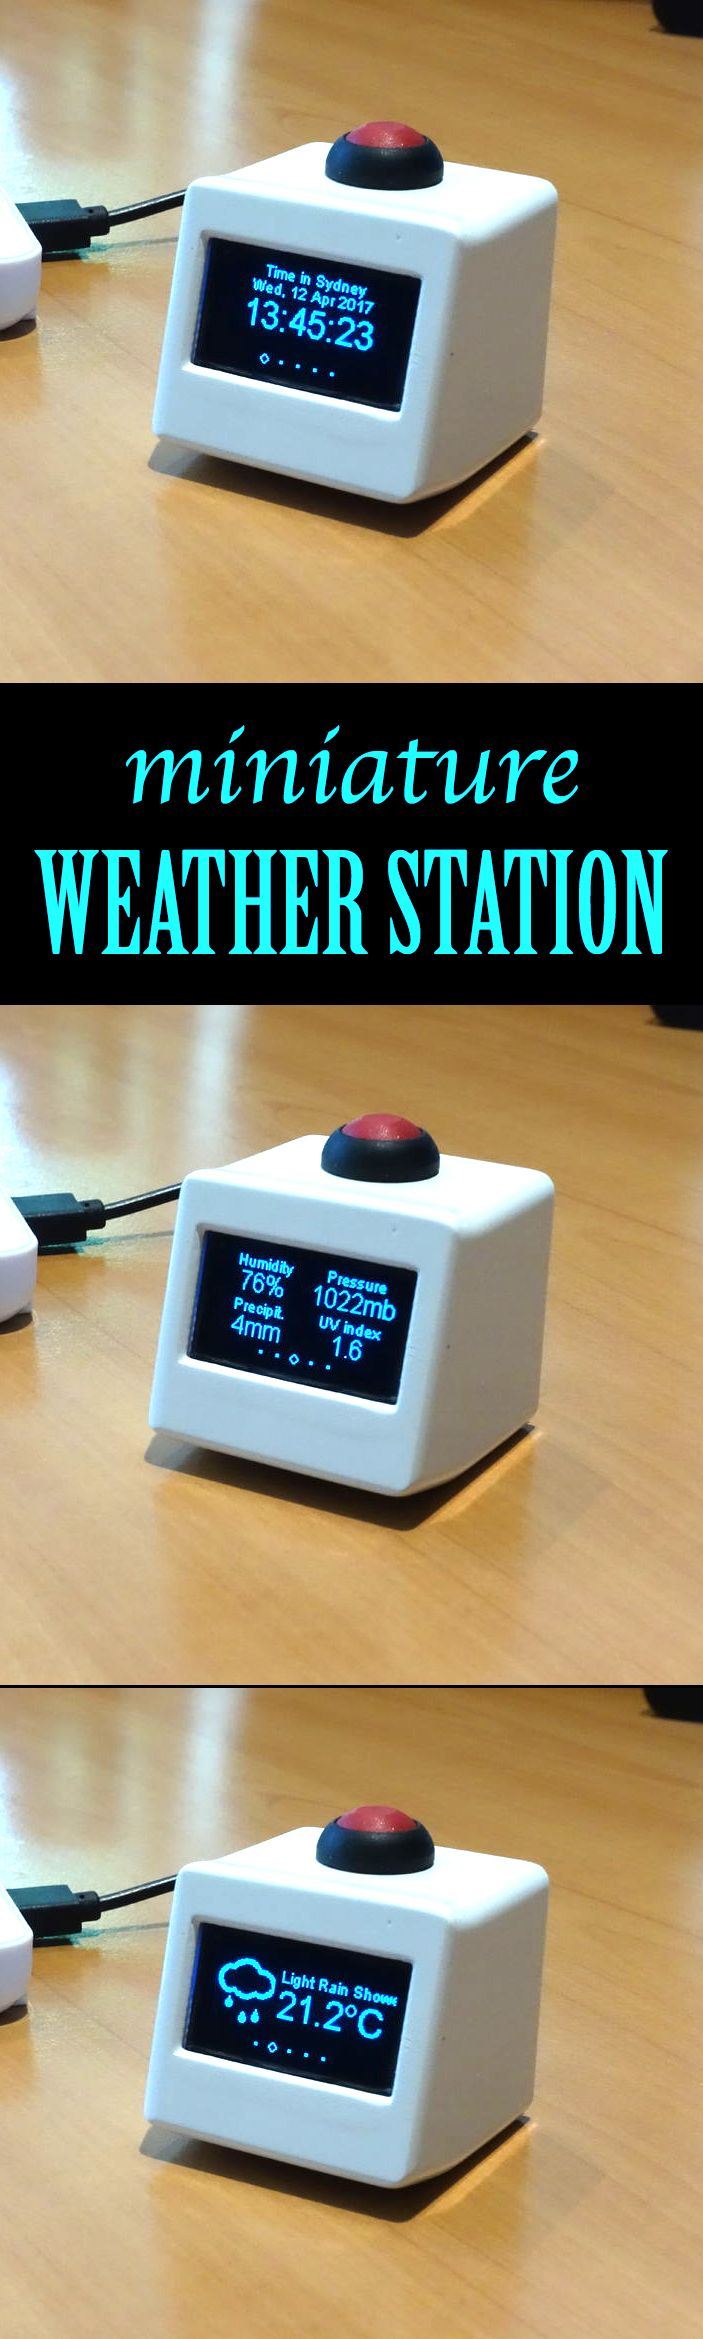 16 Best Follie Images On Pinterest Corks Wine Cork Crafts And 70v Power Supply2a Variable Using Lm723 2n3055 Learn How To Build Customize A Mini Weather Station For Your Home